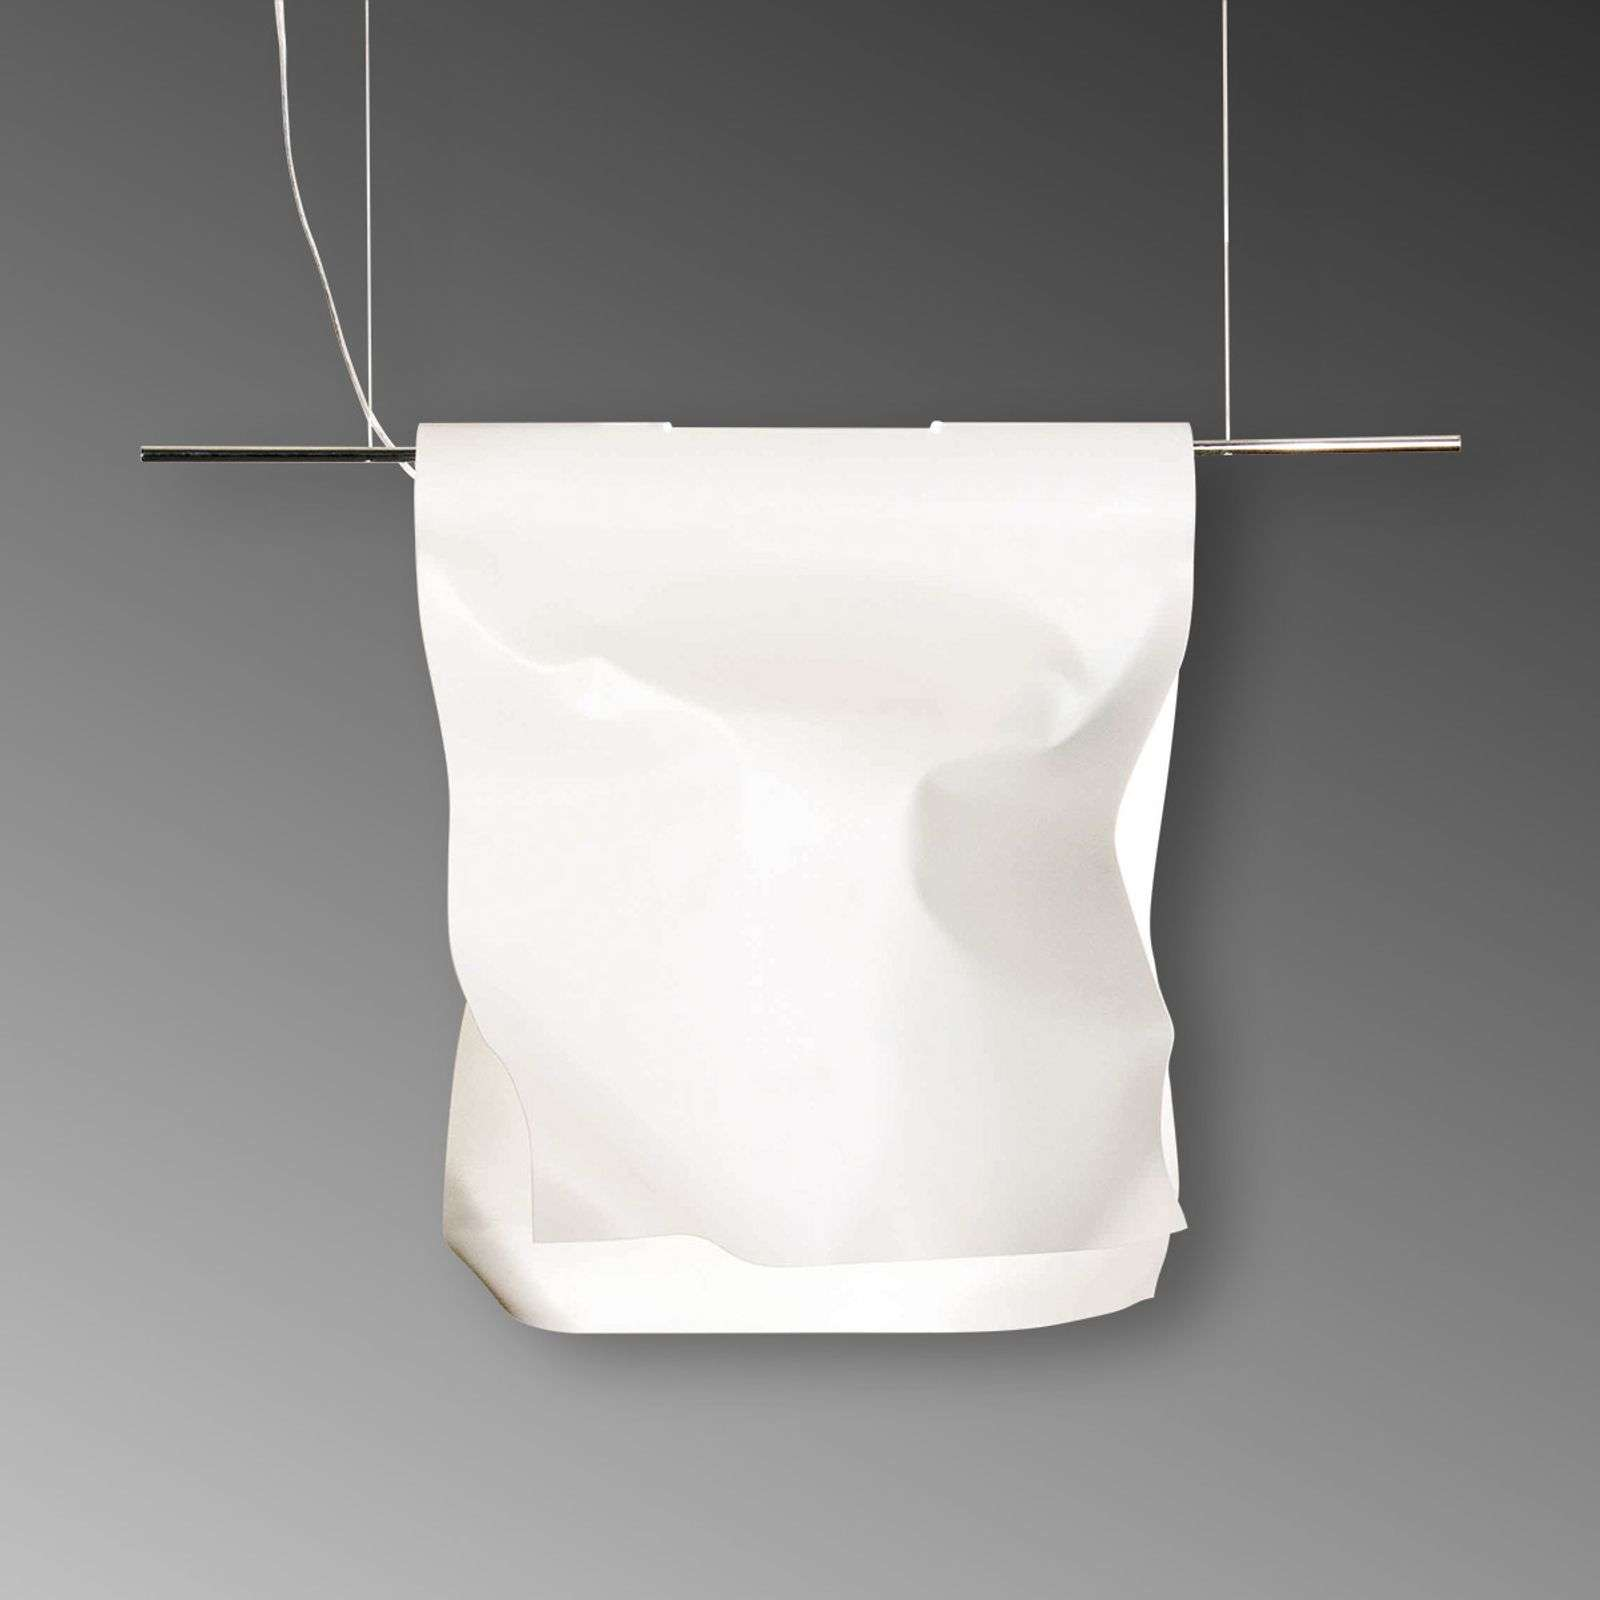 Suspension Stendimi blanche 40 cm